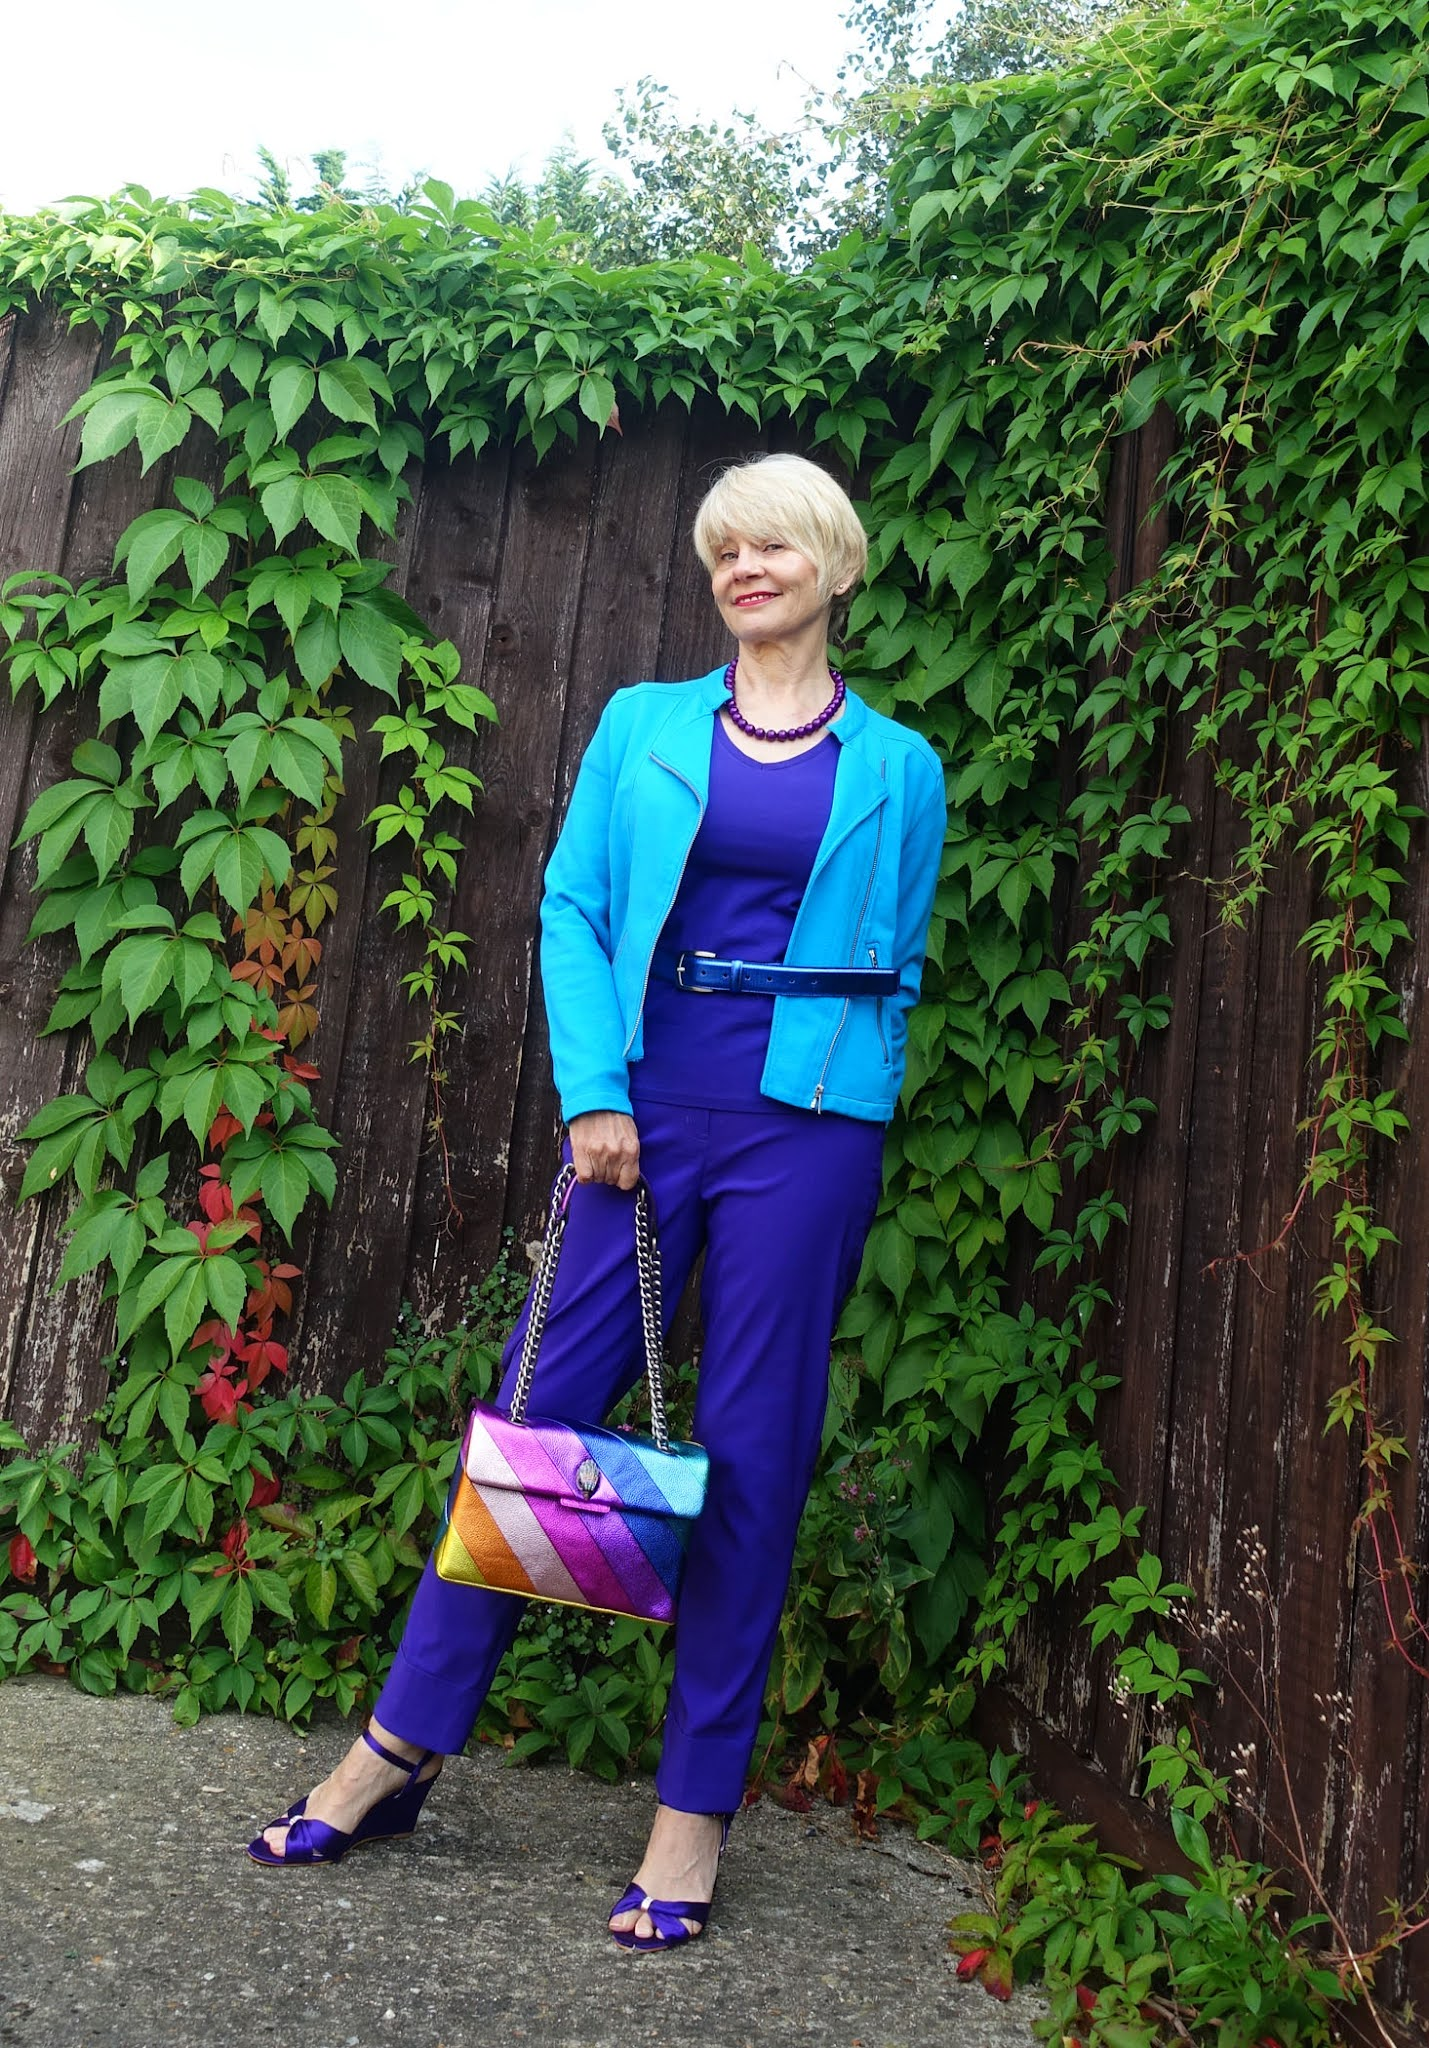 An outfit inspired by the Kurt Geiger Rainbow bag worn by Is This Mutton style blogger Gail Hanlon. Purple trousers, sandals and top with a vivid Blue Jewel jacket